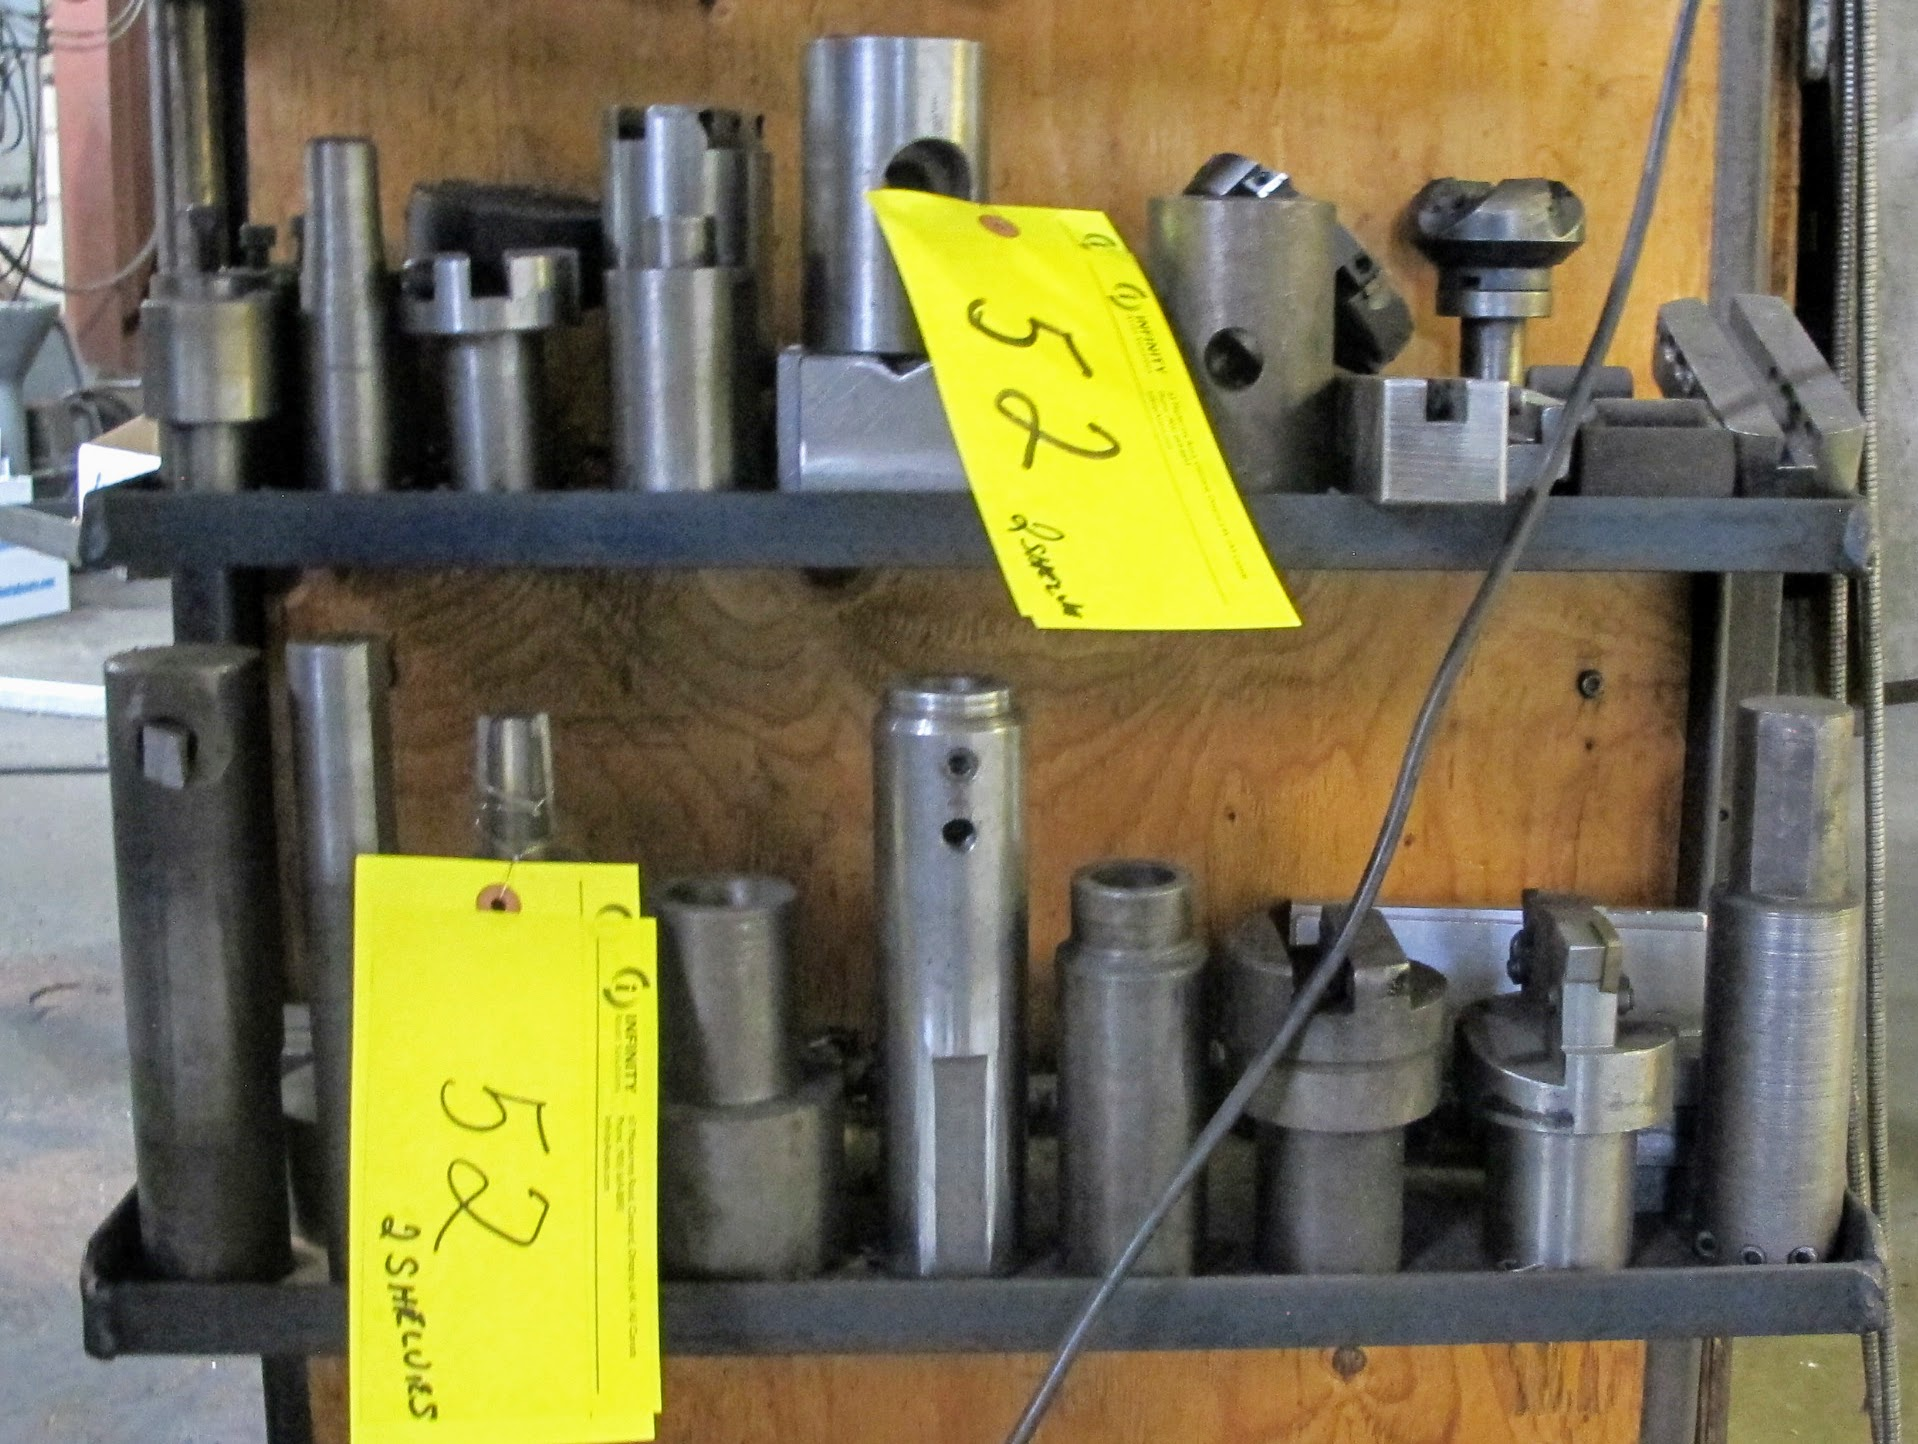 LOT OF TOOL HOLDERS, ARMS, BORING BARS AND CUTTING HEADS - Image 2 of 2